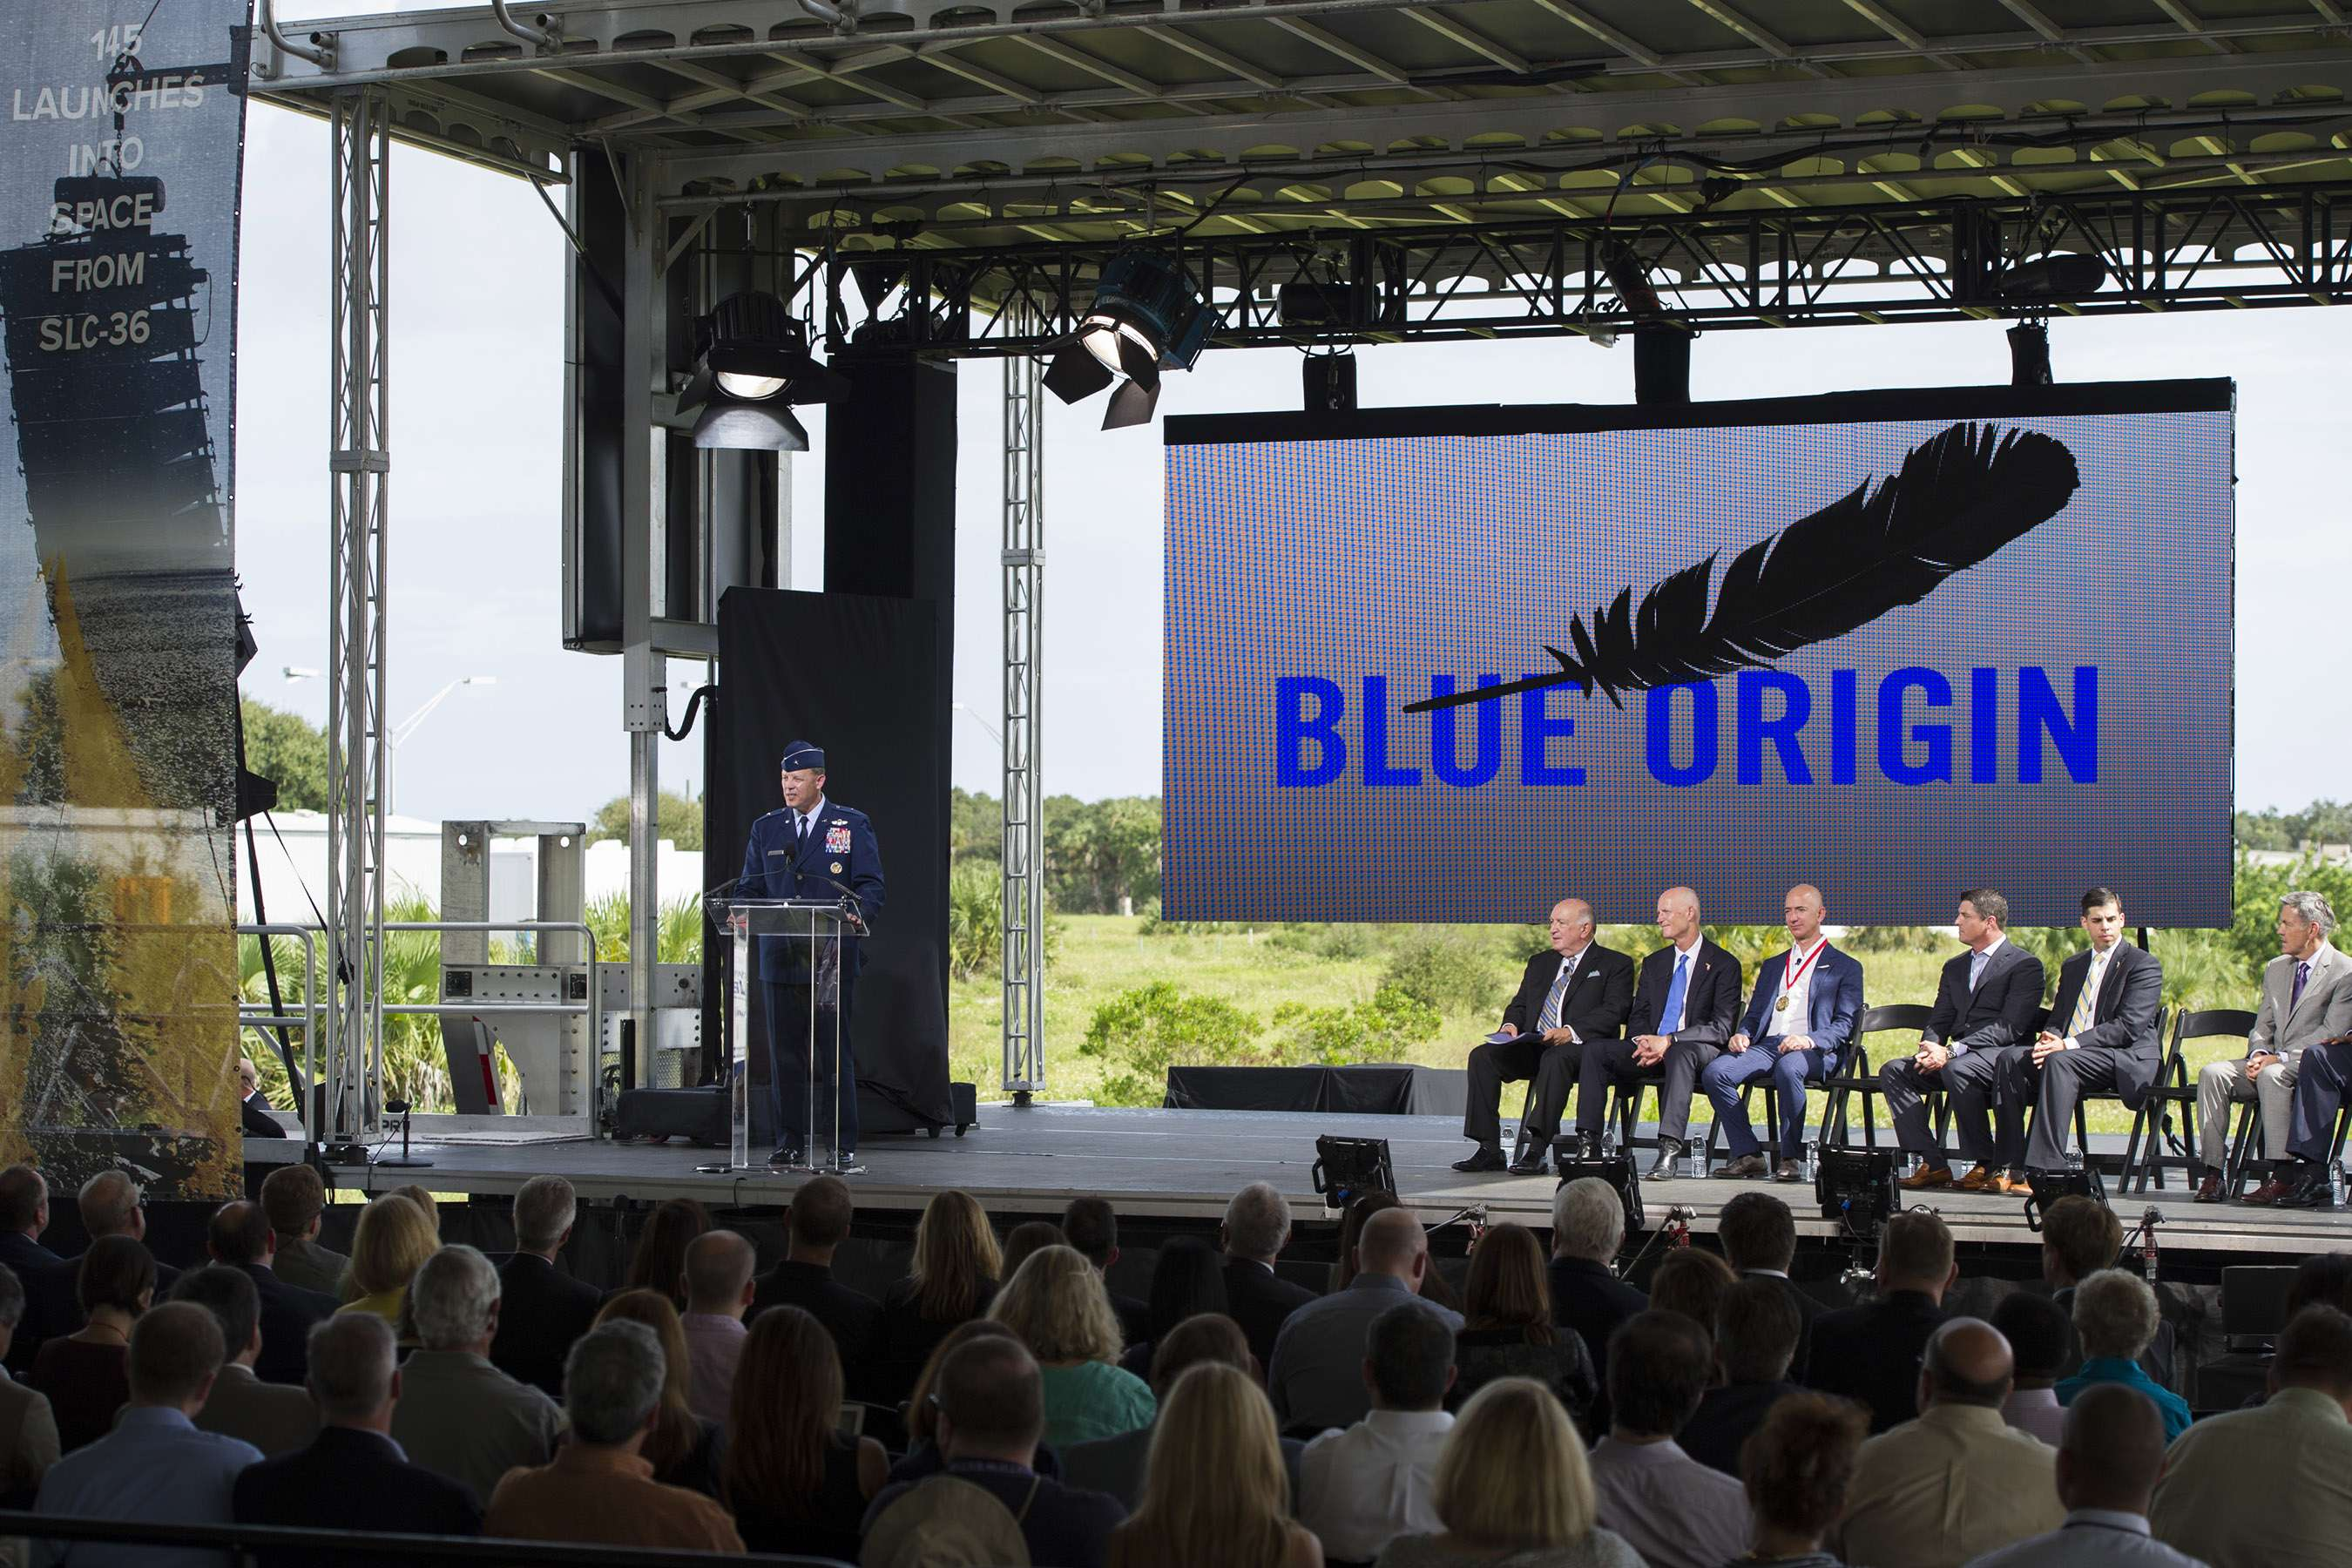 Brig. Gen. Steven Garland, 14th Air Force vice commander provides remarks at a Blue Origin media event held at Space Launch Complex 36 at Cape Canaveral Air Force Station, Florida on September 15, 2015. (Image Credit: U.S. Air Force/Matthew Jurgens)